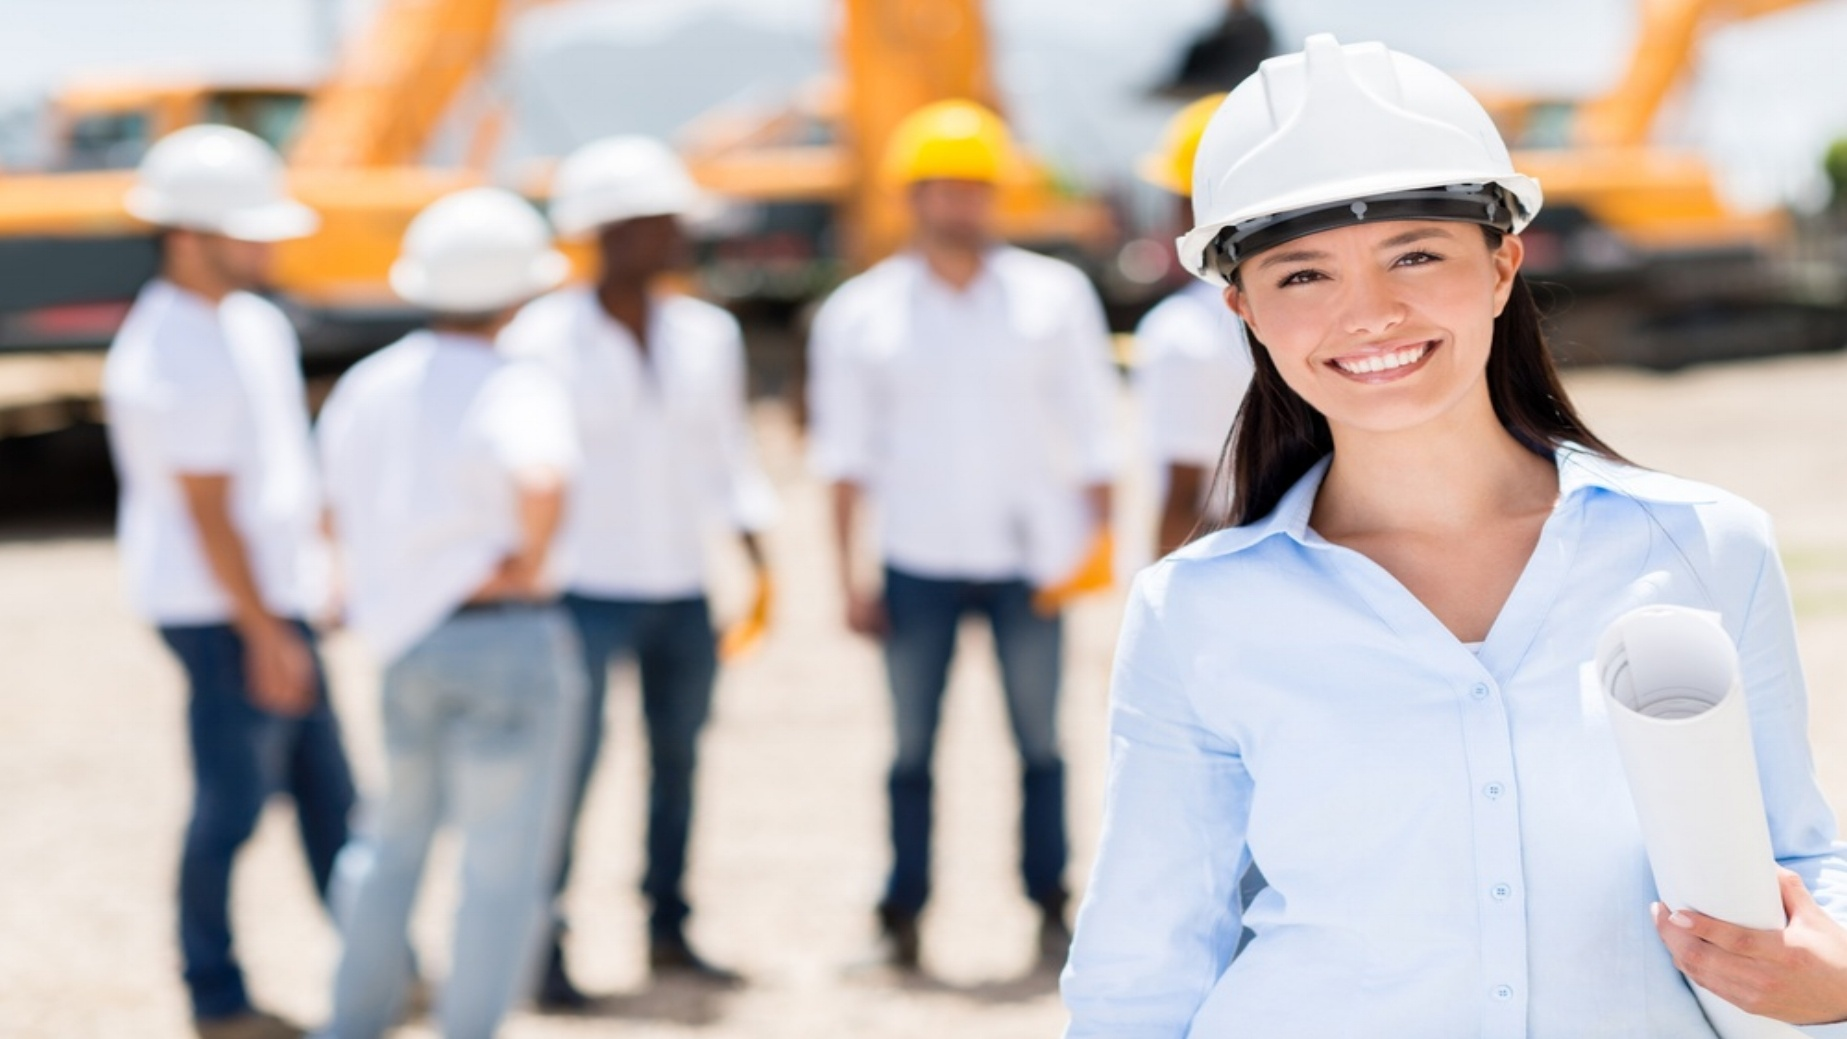 Female architect at a construction site looking happy-204220-edited.jpeg